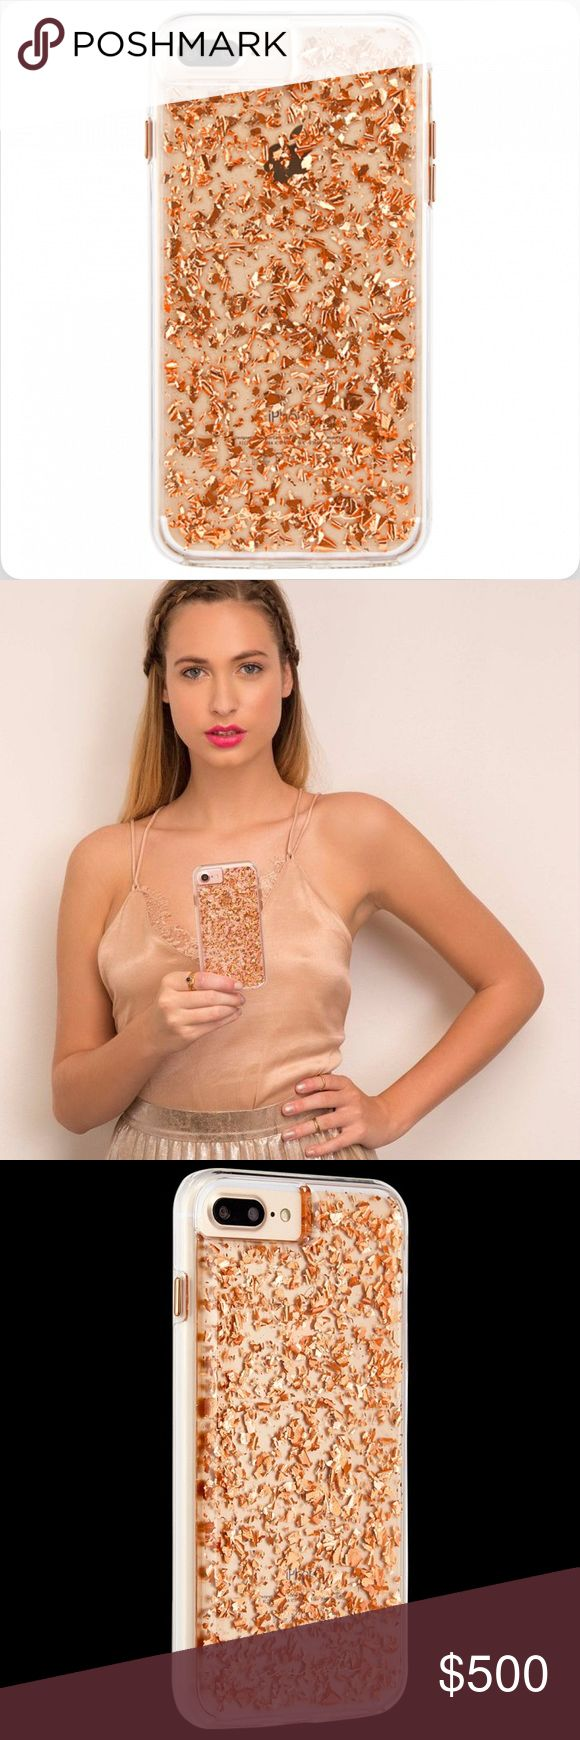 Casemate 24 Karat Rose Gold iPhone Case - NWOT Inspired by the chic lucite handbags of the 1950s and 1960s, this iPhone 7 Plus case will step up your shine game with metallic rose gold elements encased in clear resin.  Metallic rose gold highlights Military strength impact protection* Dual layer protection with a slim silhouette Shock absorbing bumper Anti-scratch technology Refined metallic buttons *This case is certified to meet or exceed  MIL-STD-810G drop test standards. Casemate…